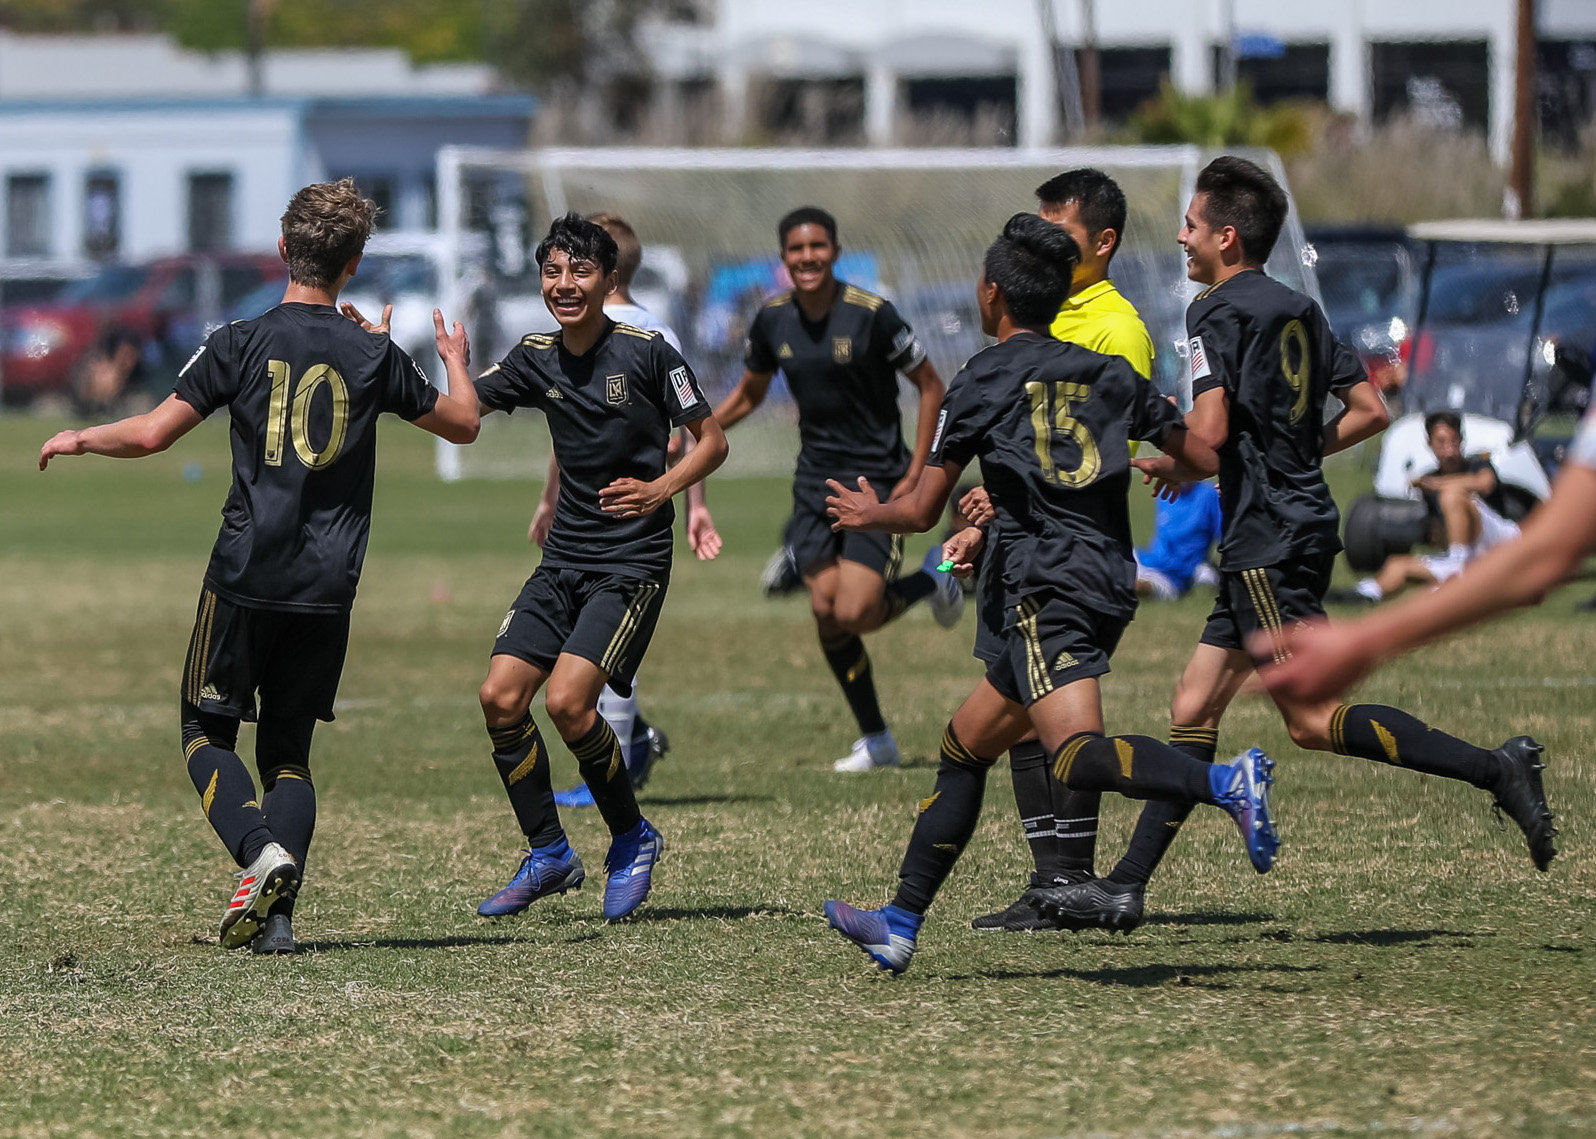 After years of Development, LAFC is Ready for Its First DA Playoffs